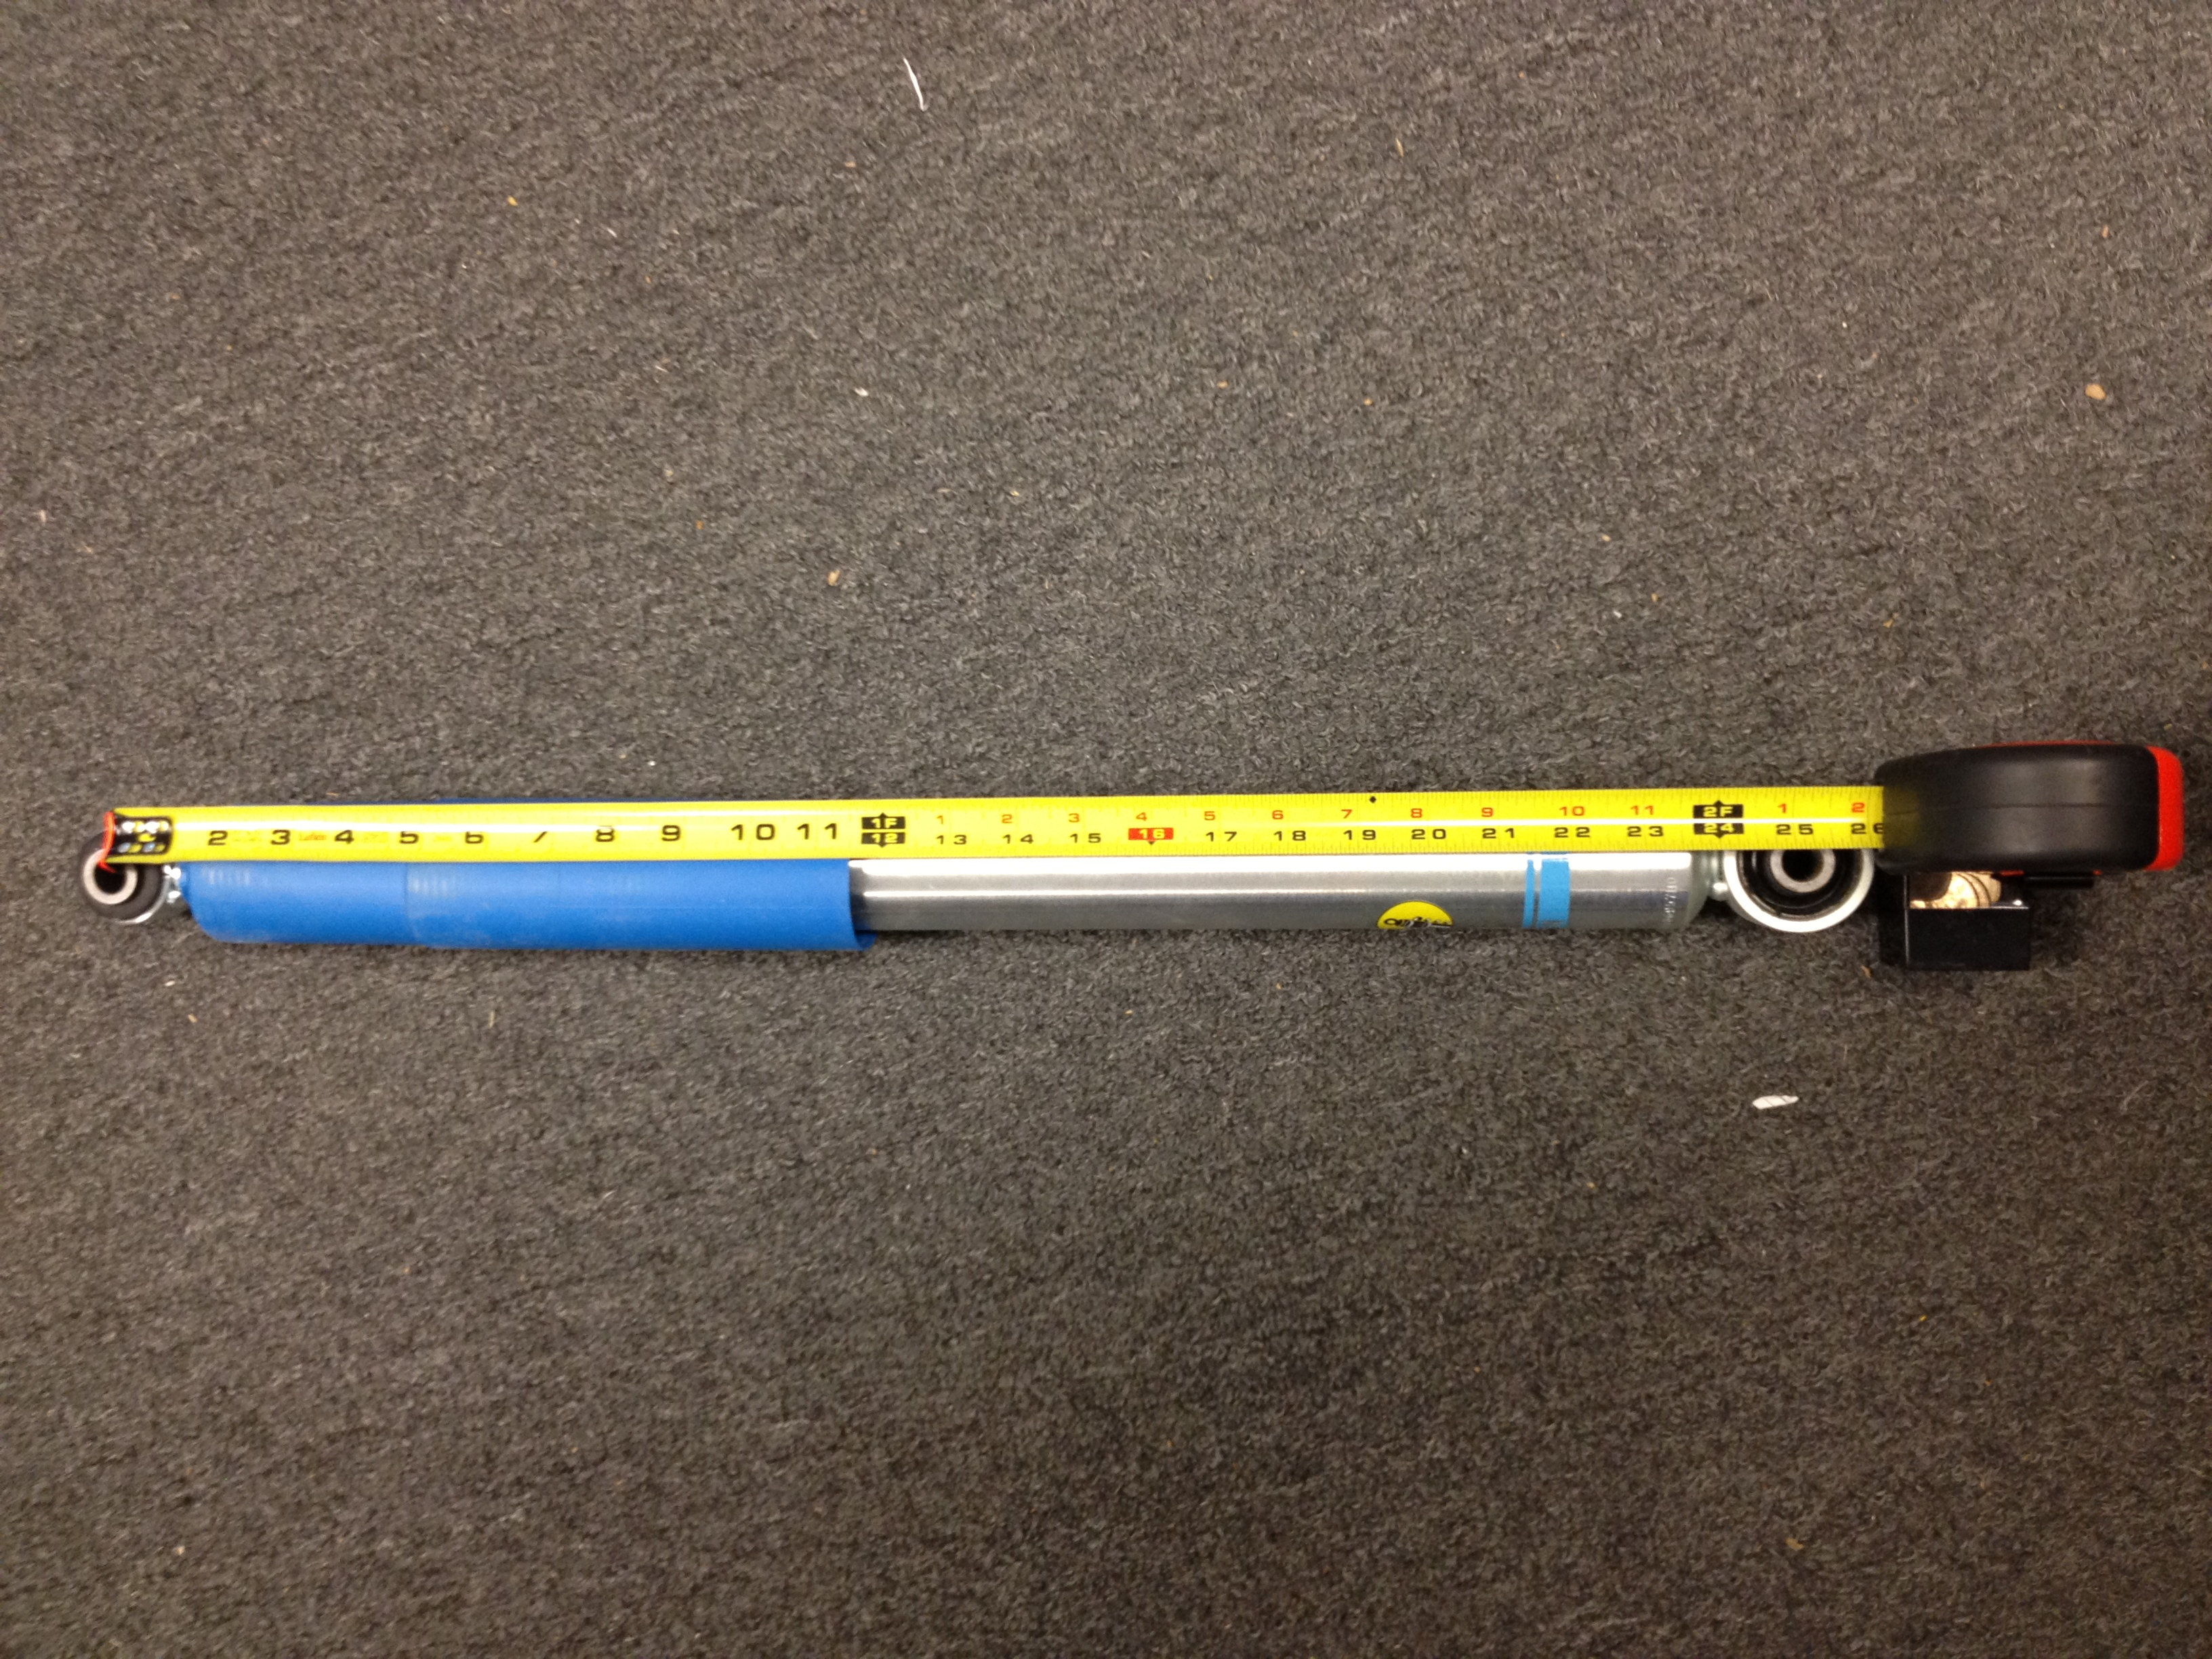 bilstein shock length chart - Bingo.raindanceirrigation.co